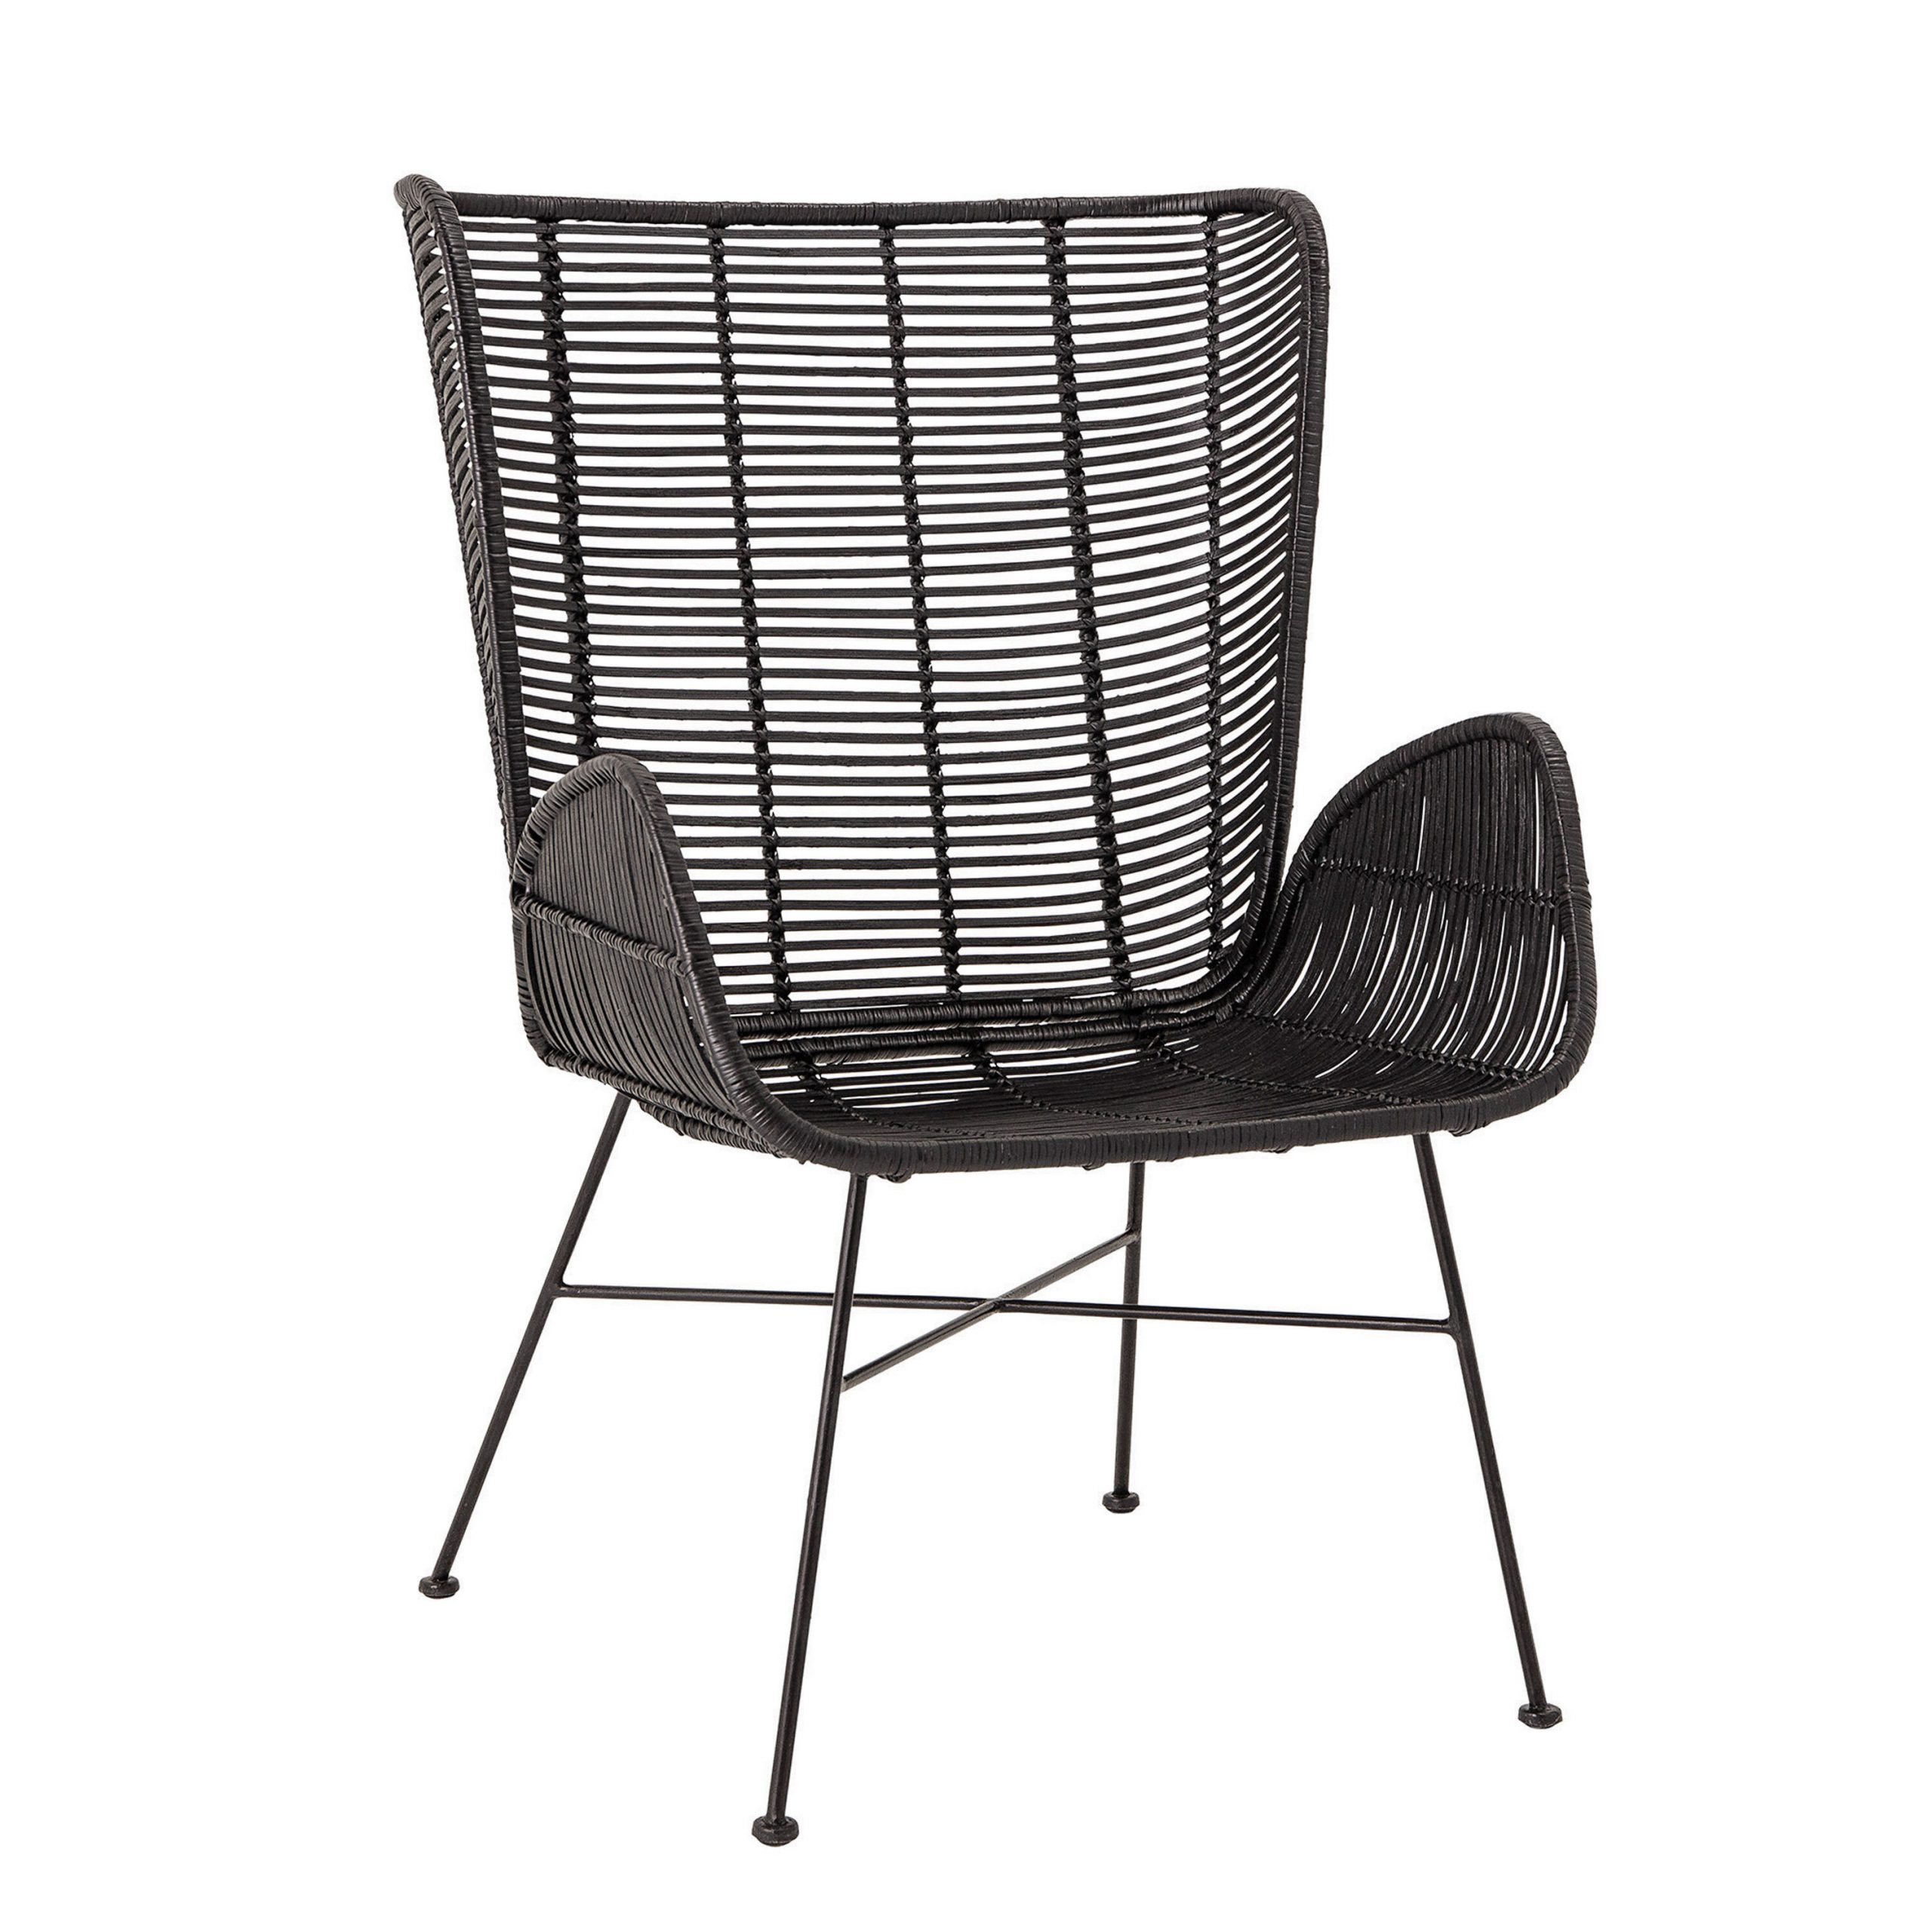 "Oglesby Woven Rattan 19"" Armchair For Oglesby Armchairs (View 3 of 15)"